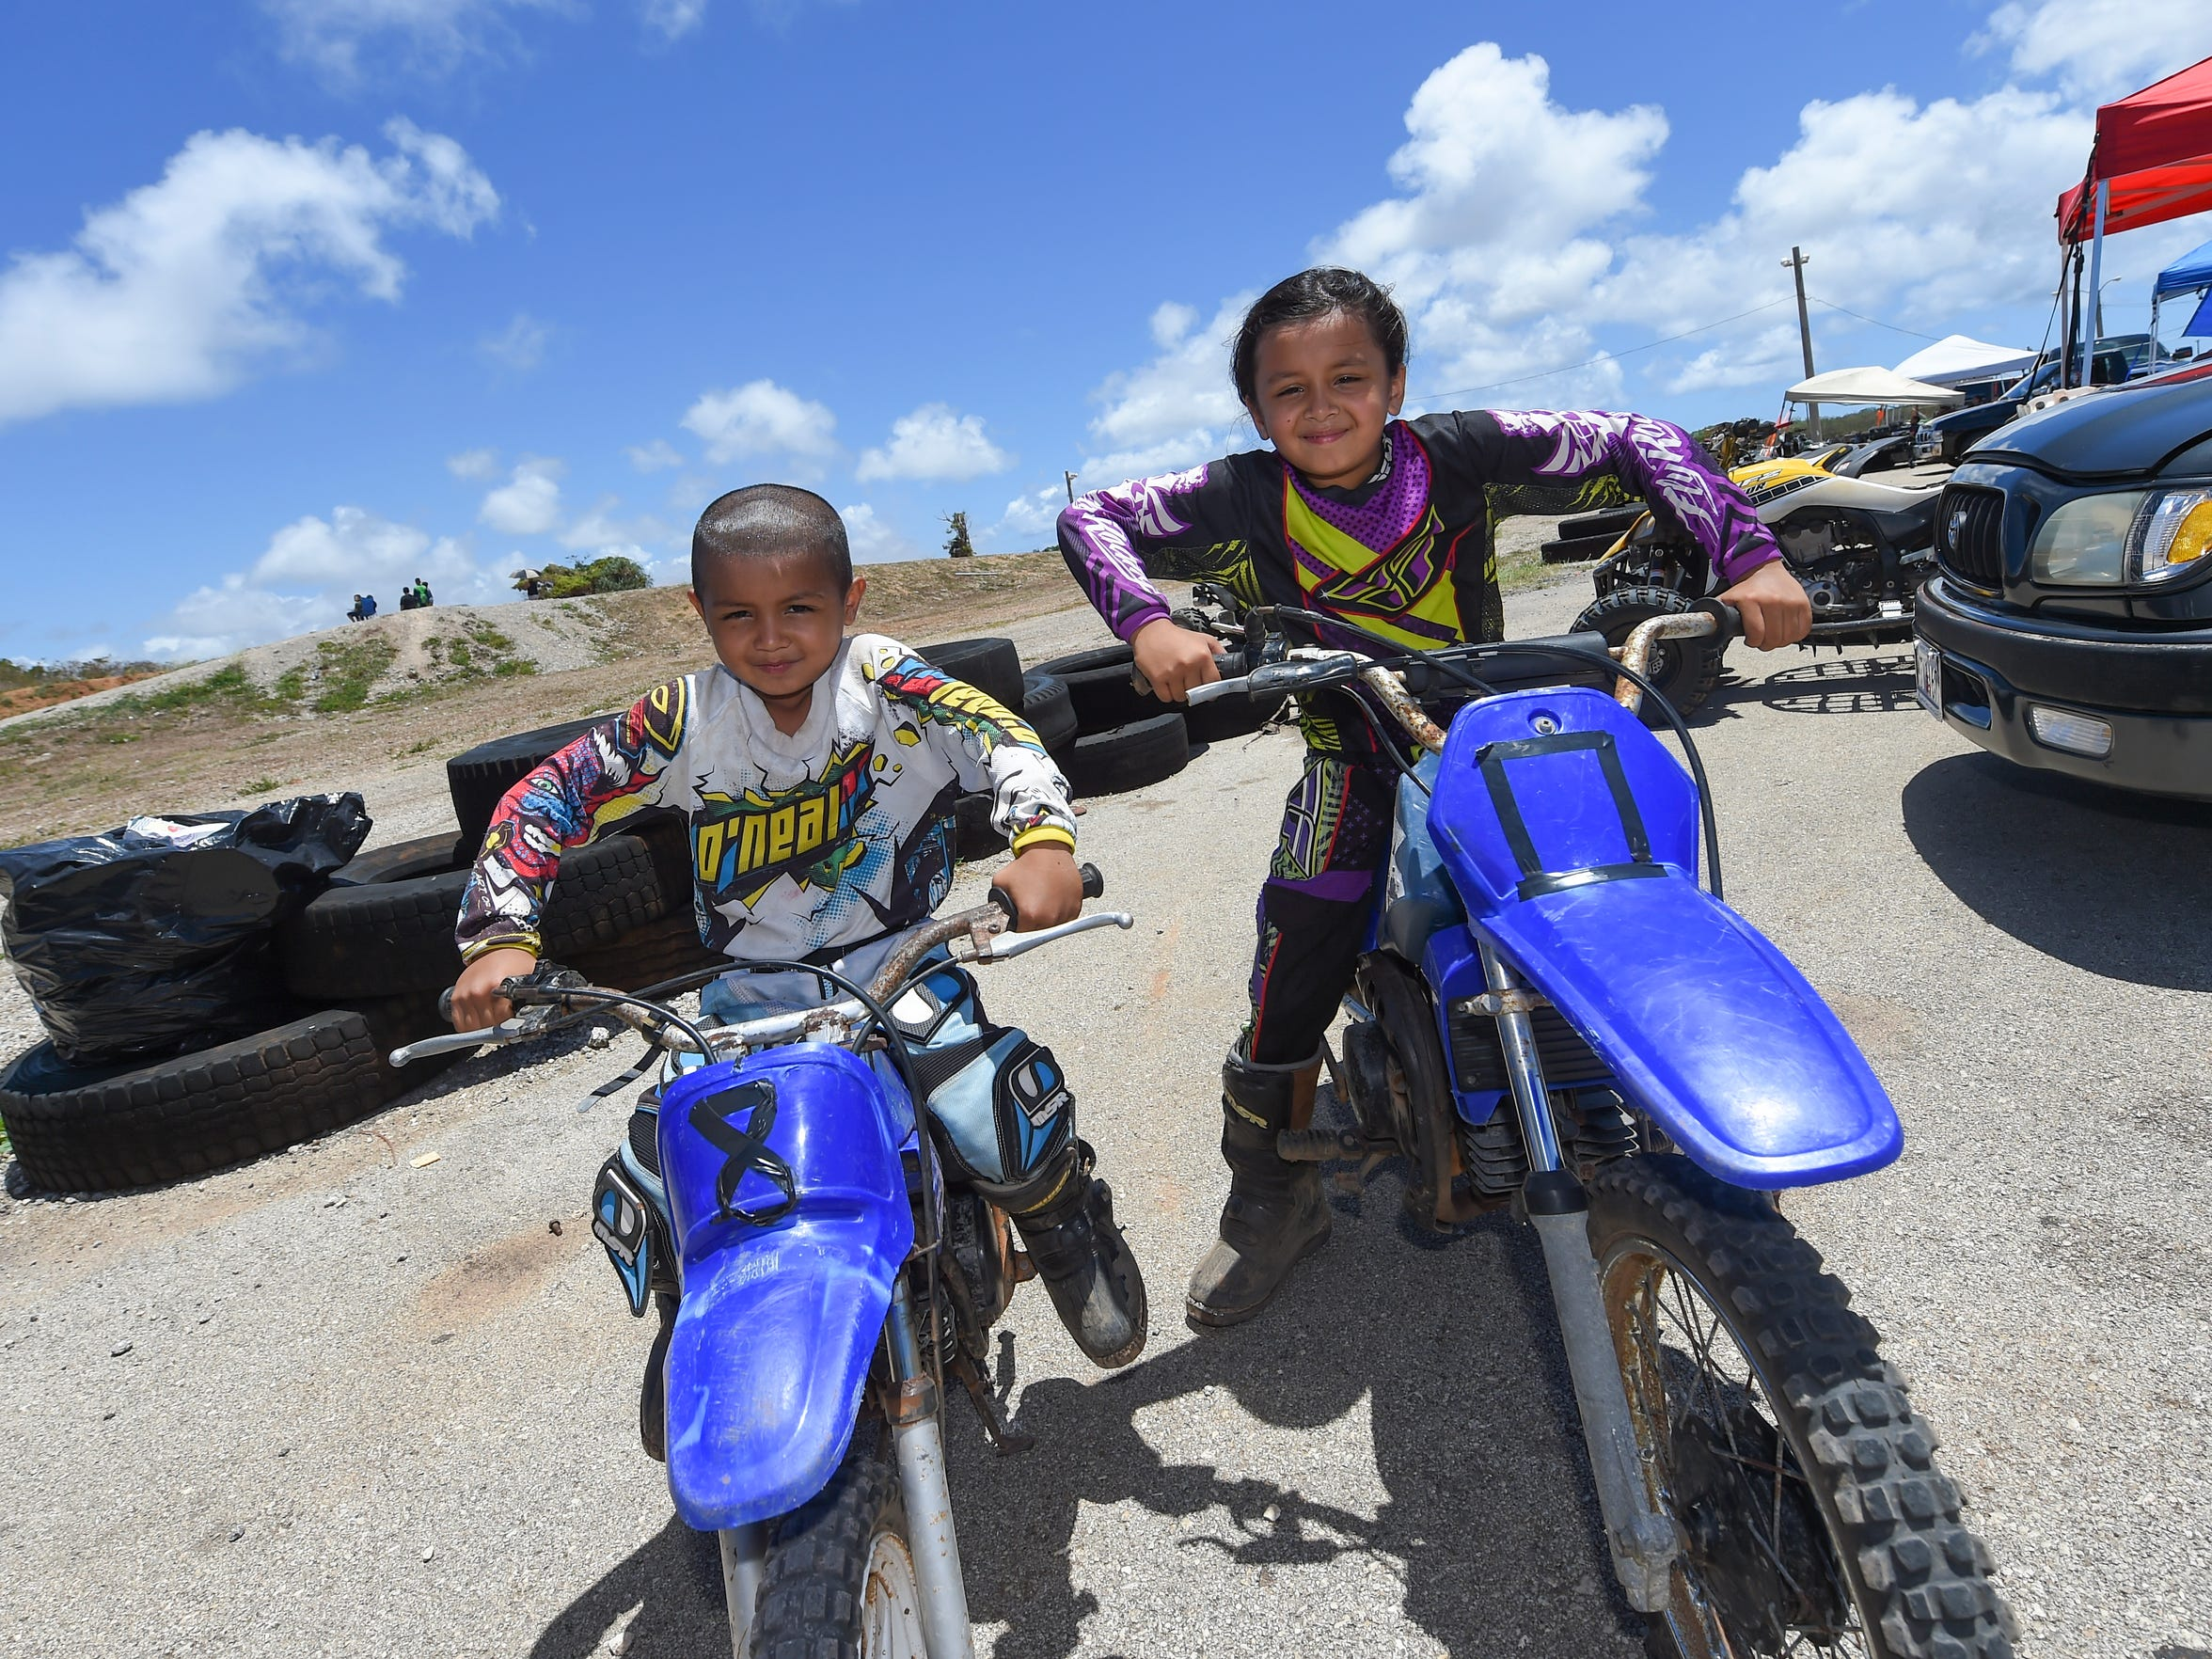 Motocross siblings Jonathan Aguon, 5, left, and his sister Jerisha Guzman, 7, right, pose for a photo together during the Monster Energy 2016 Guam Motocross Championship at the Guam International Raceway in Yigo on June 12.